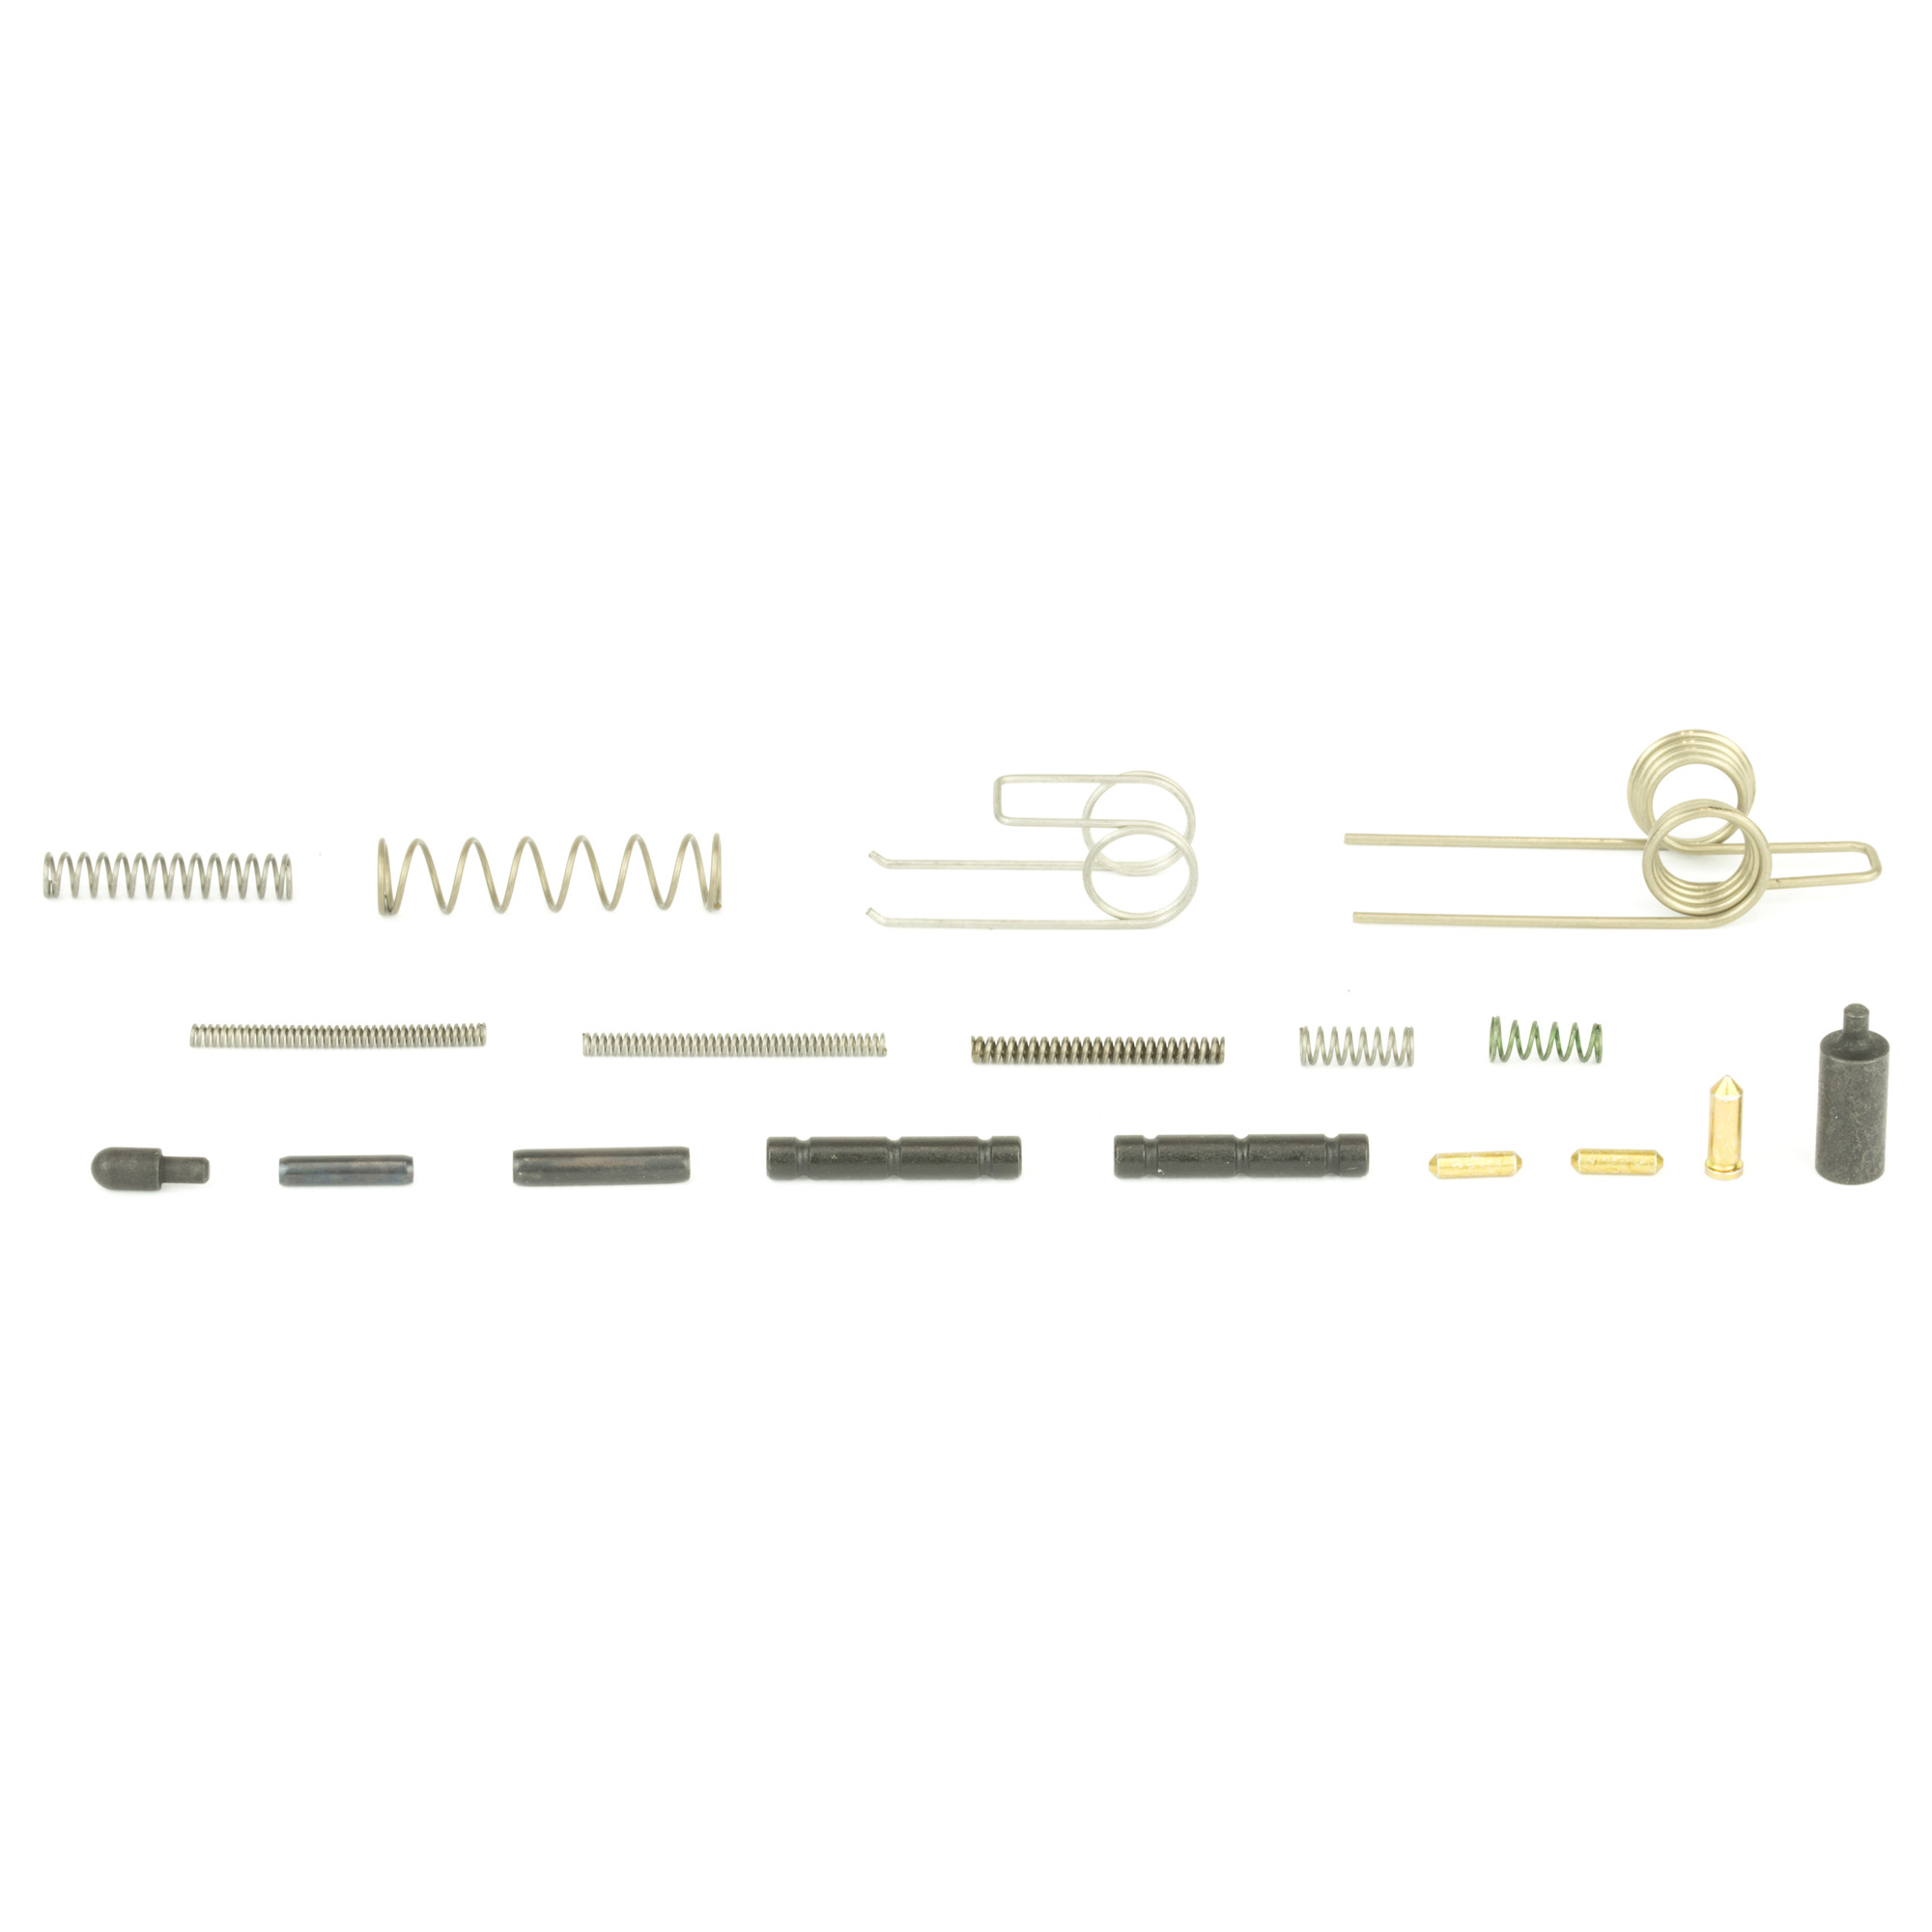 This kit includes replacement detents and springs for the AR-15 that are most commonly damaged or lost.